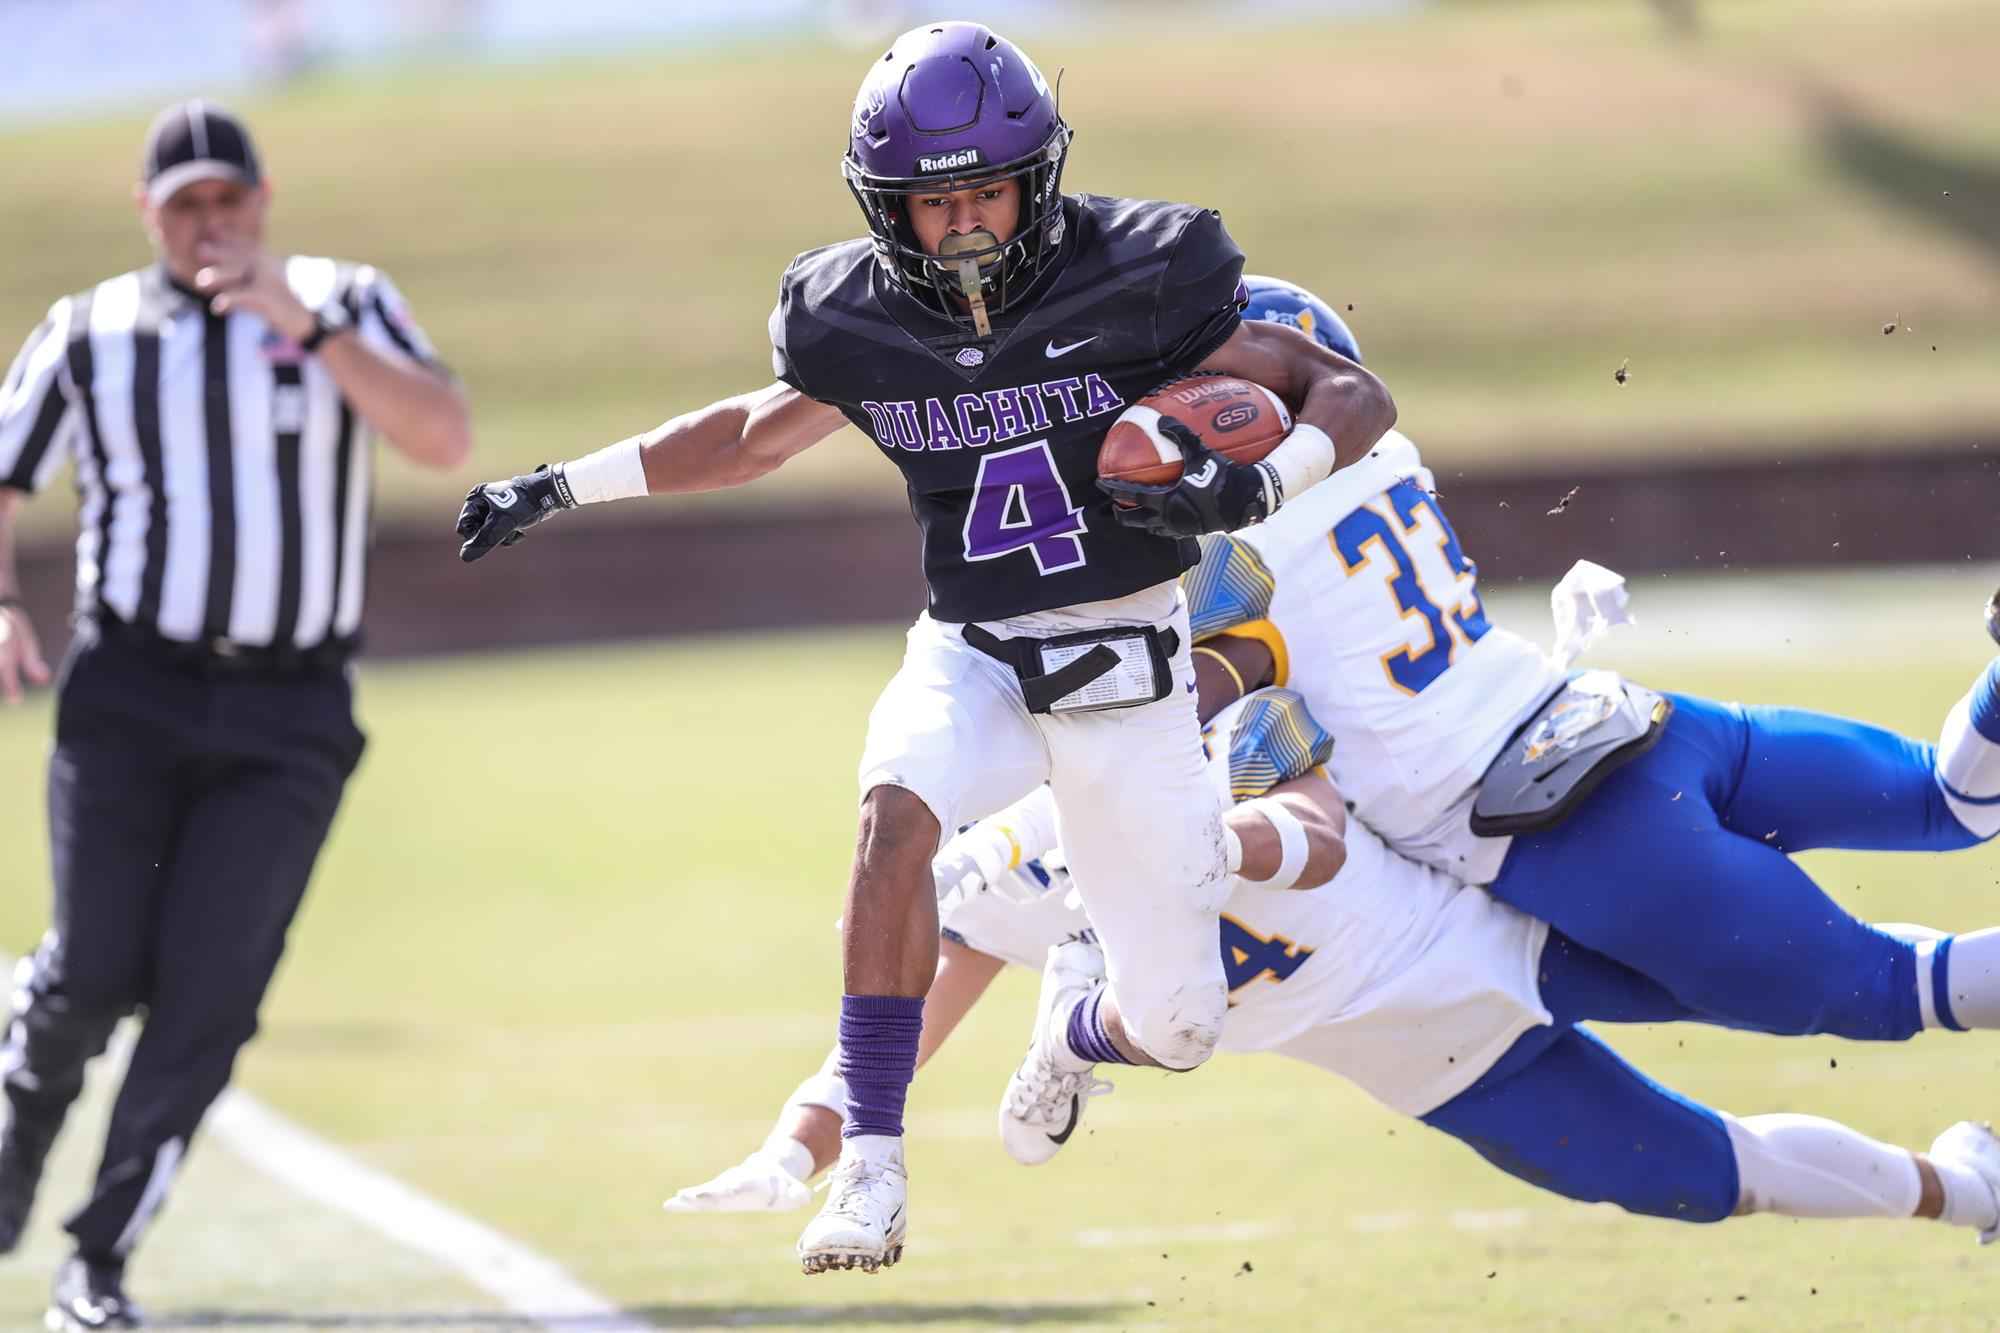 Ouachita Earns 1 Seed In Ncaa Division Ii Football Playoffs